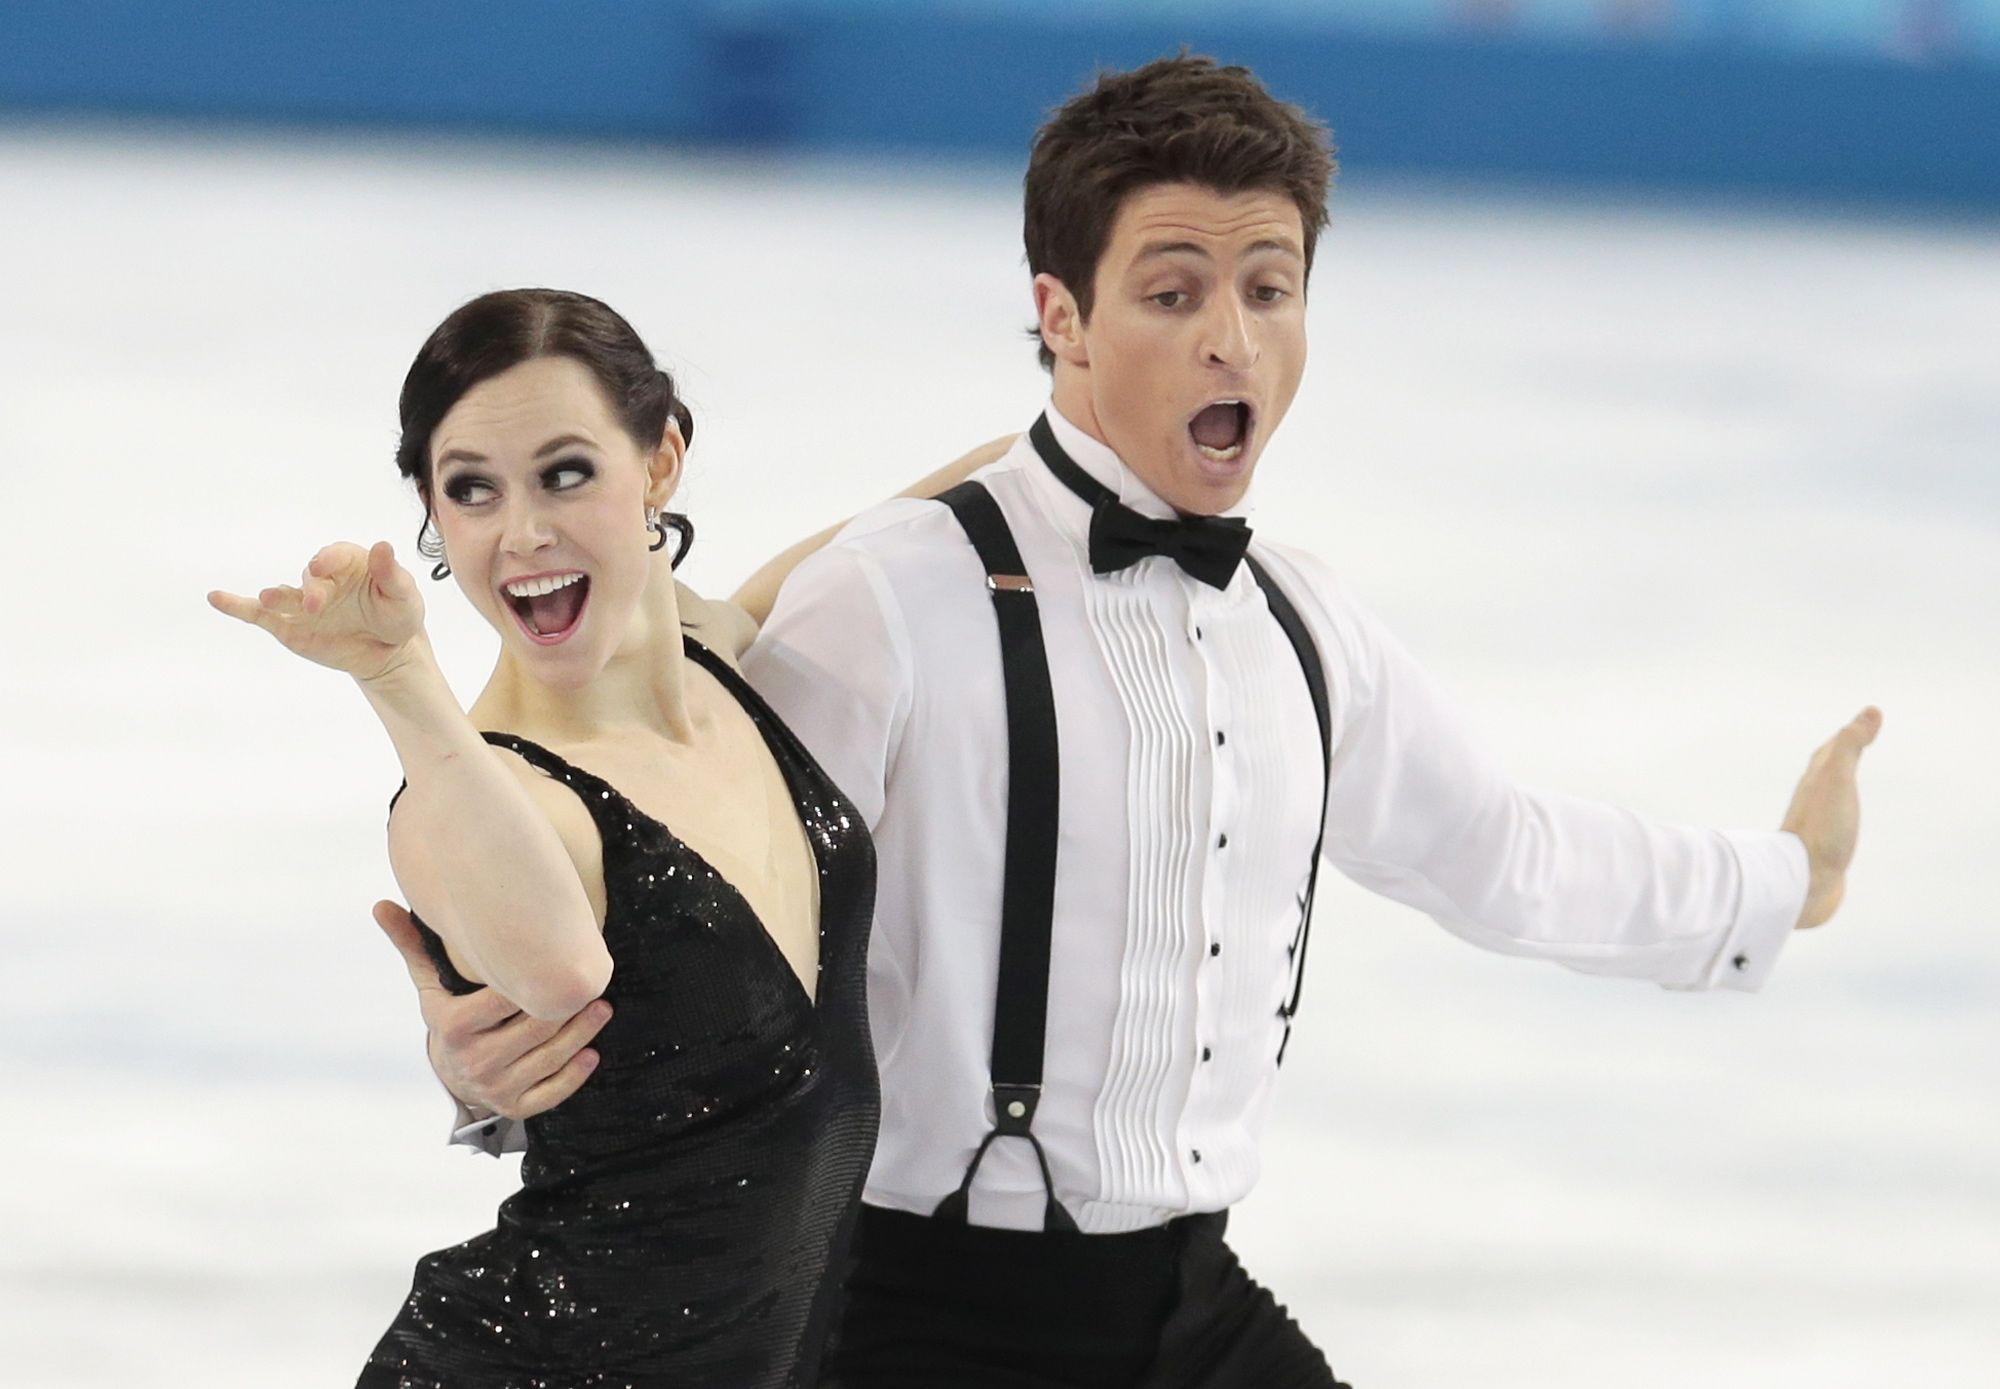 Holders of two silver medals in the discipline of figure skating ...